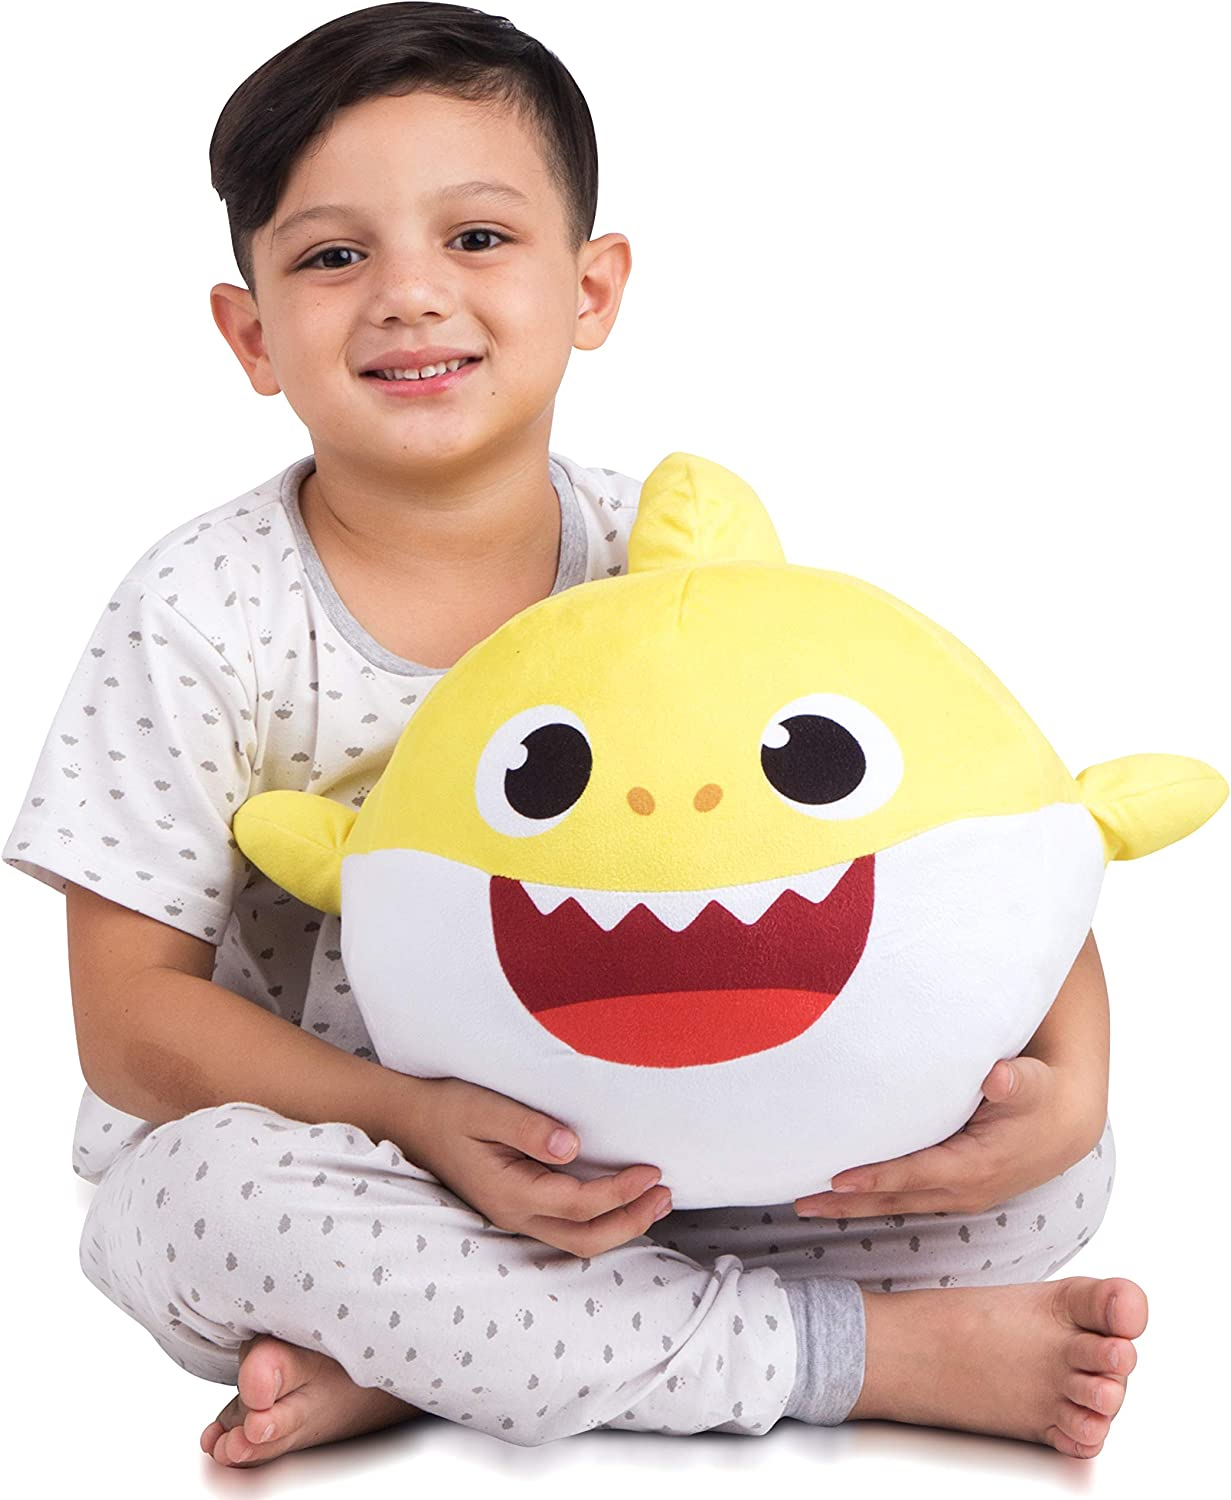 Franco Kids Bedding Super Soft Plush Snuggle Cuddle Pillow, One Size, Baby Shark Yellow